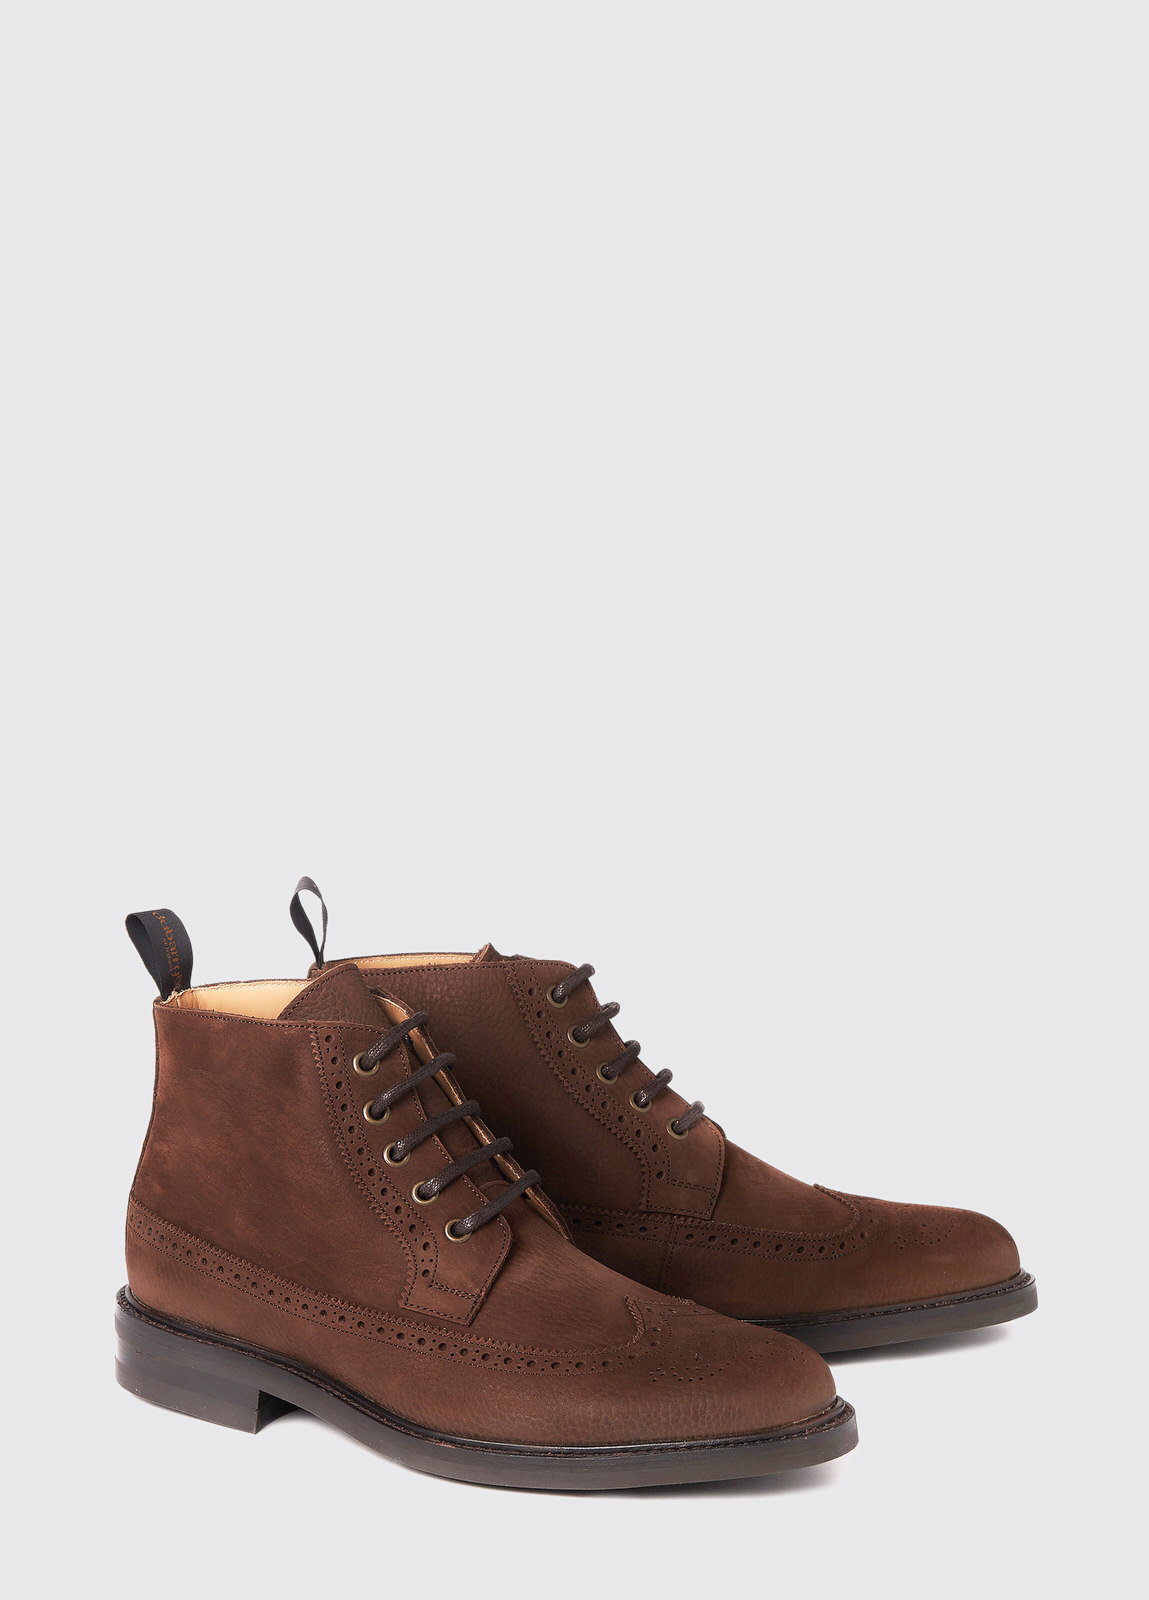 Down Goodyear Brogue Boot - Walnut